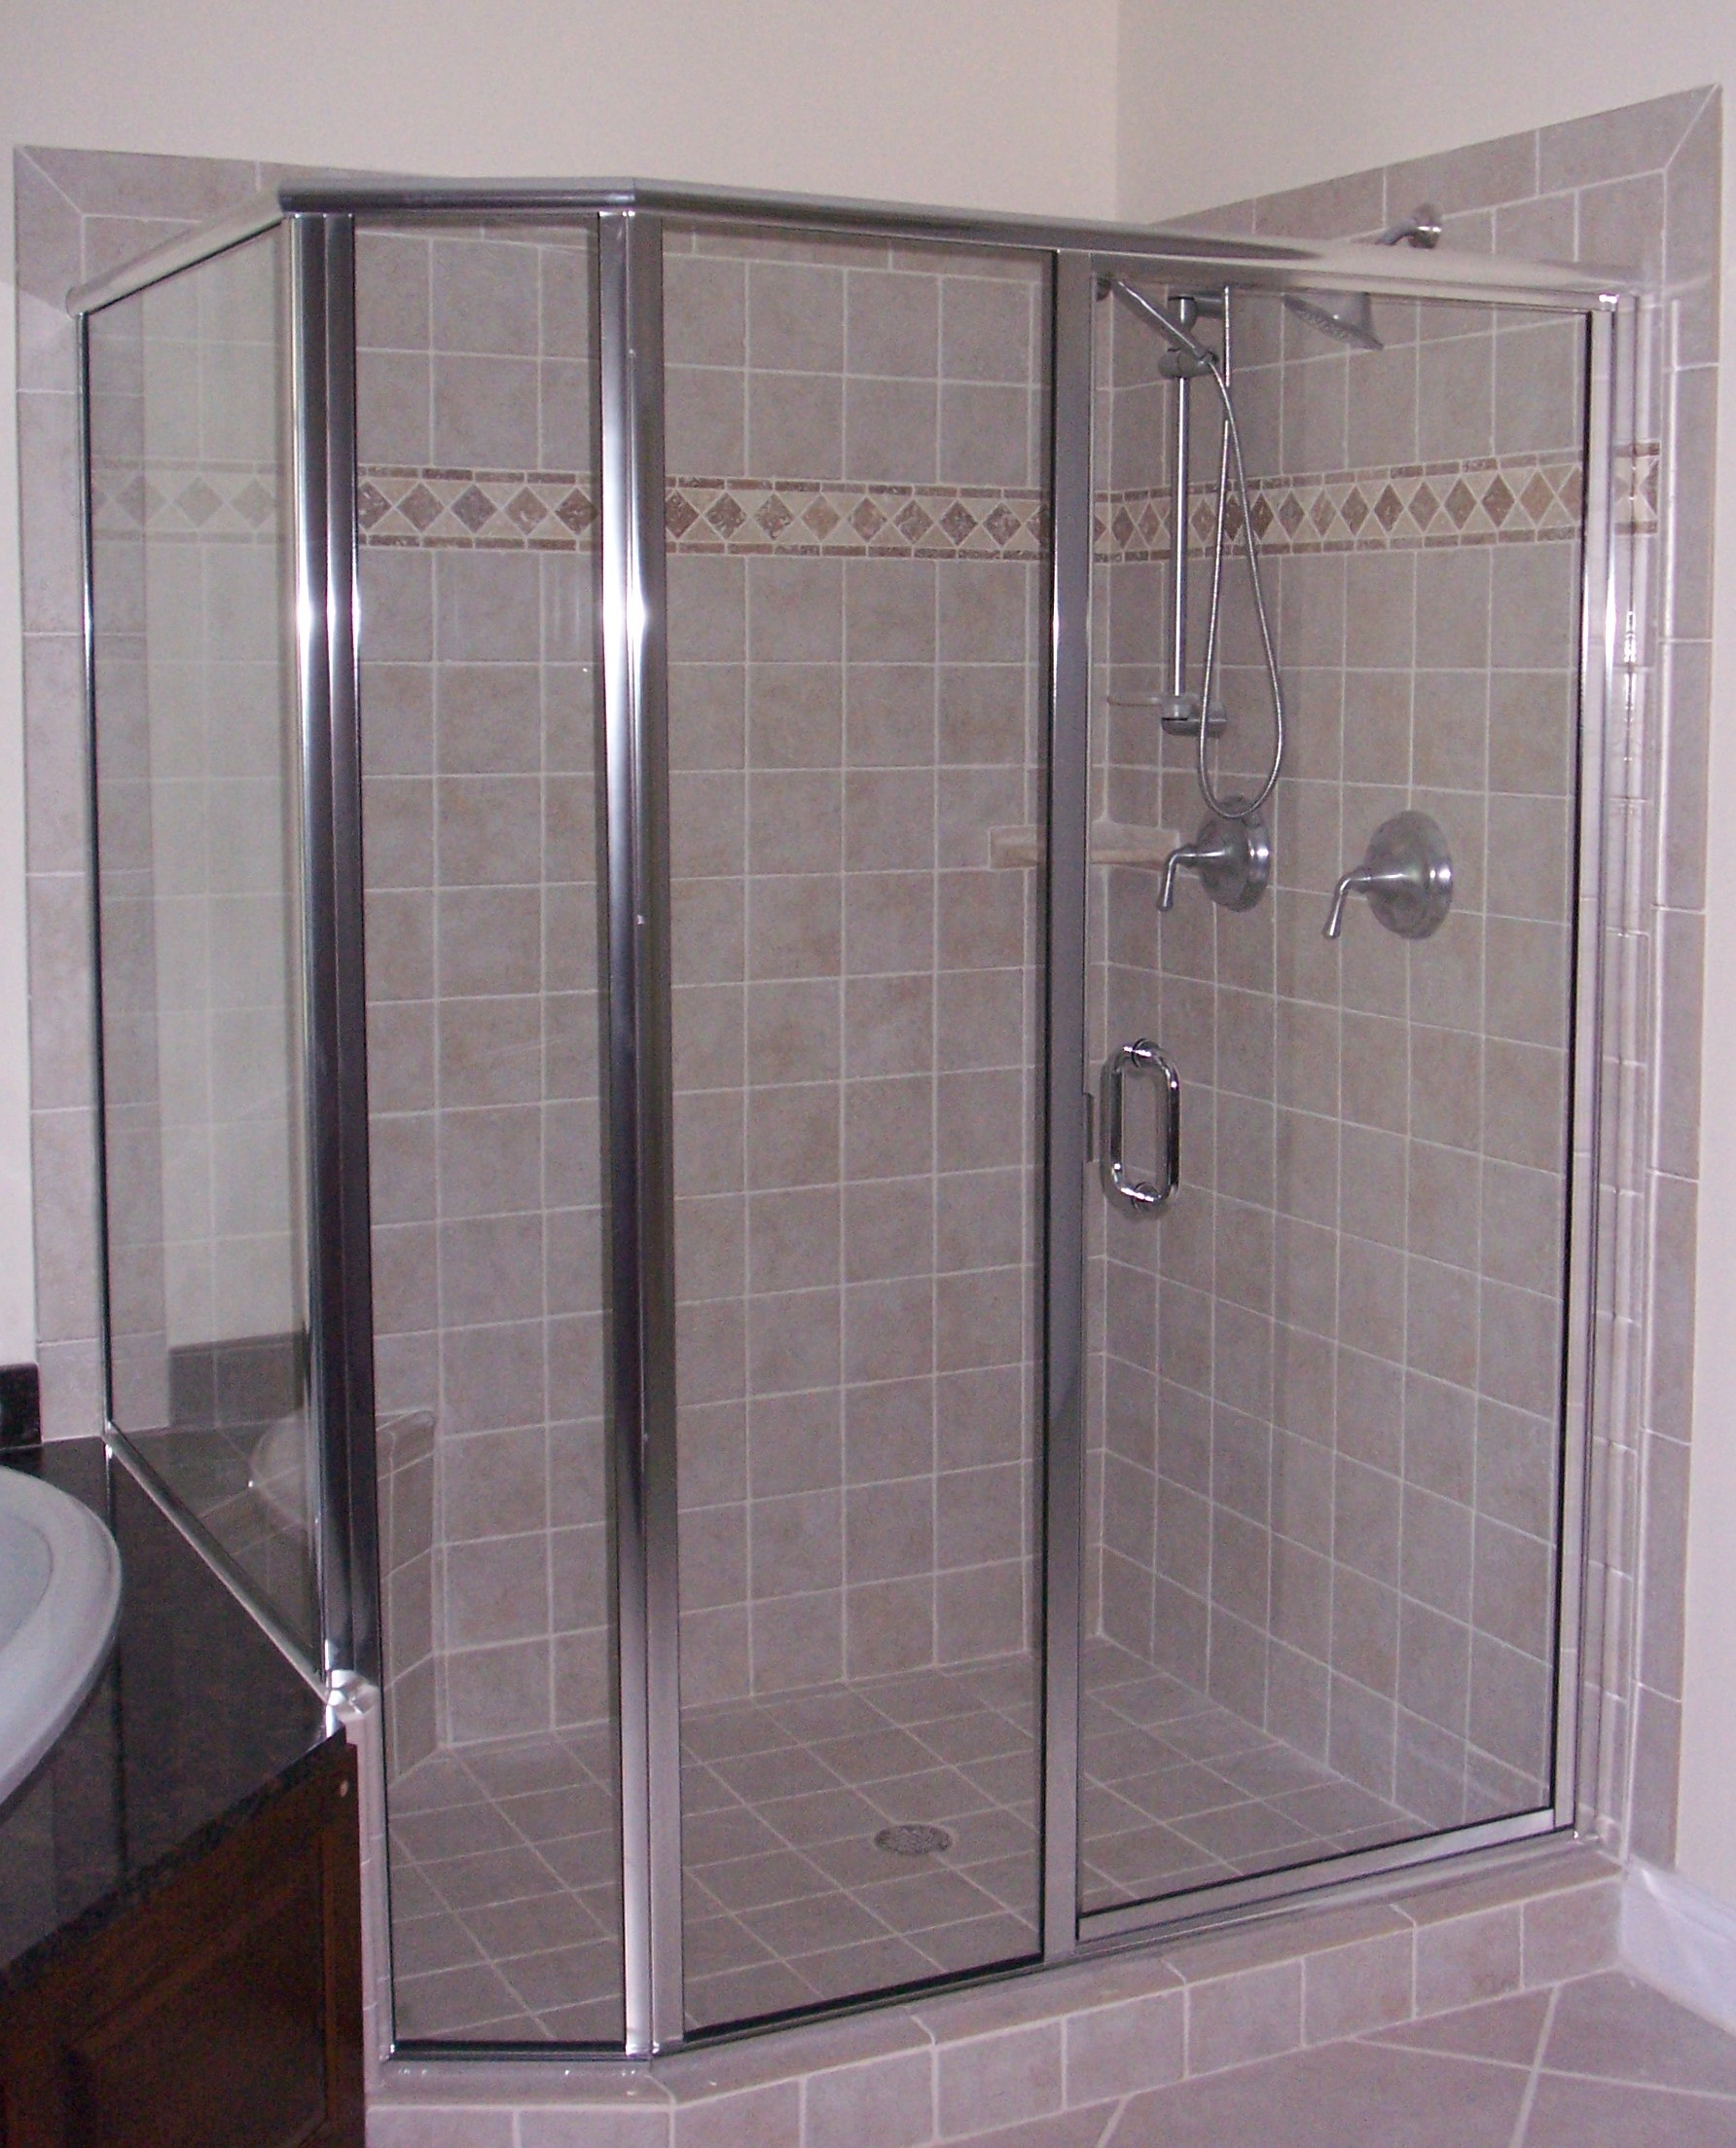 Semi Framed Glass Shower Door Strattonsociety pertaining to sizing 1784 X 2207